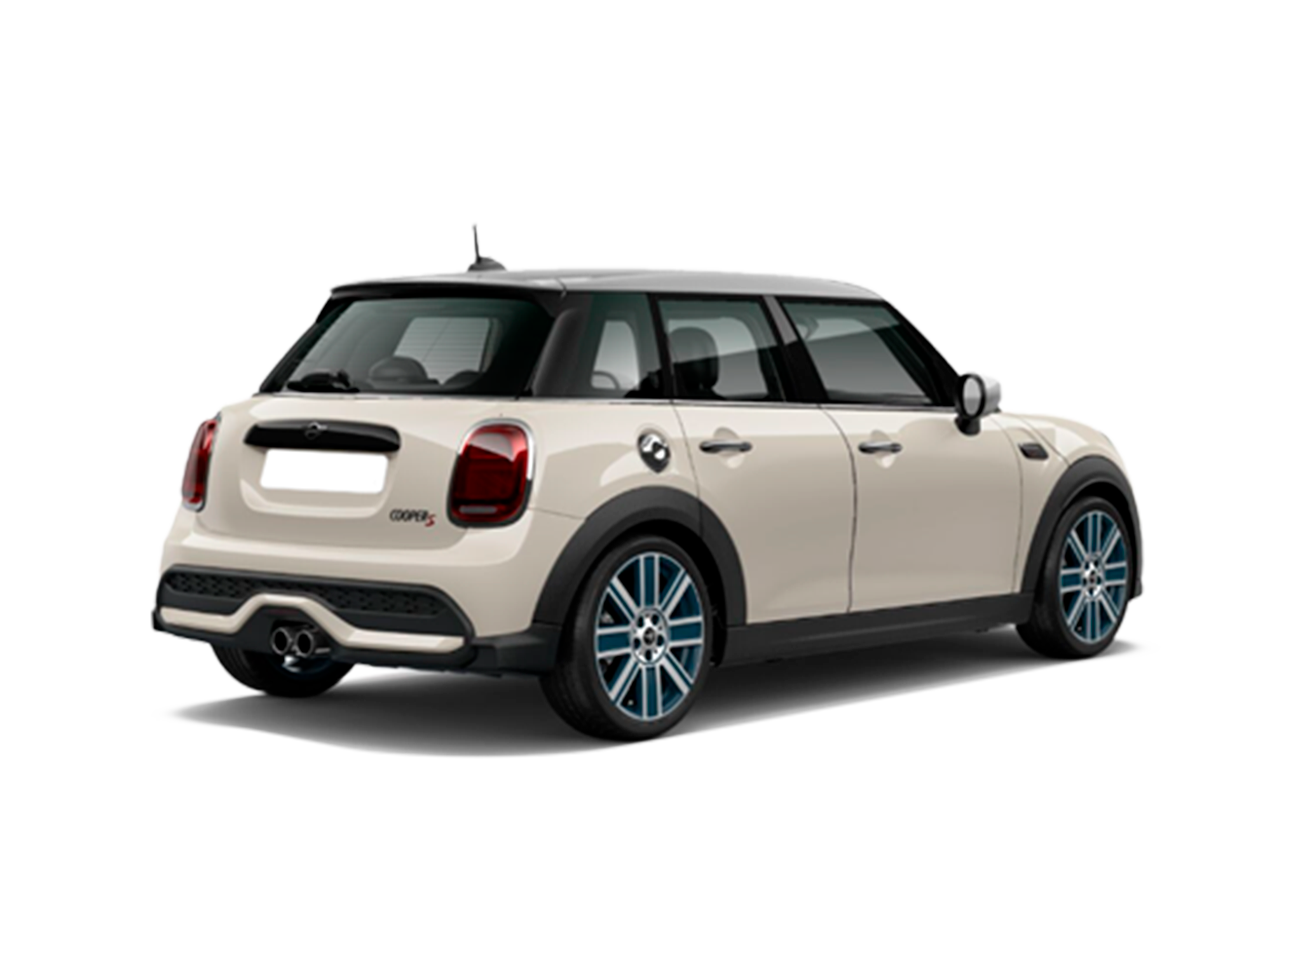 2.0 16V TWINPOWER GASOLINA S EXCLUSIVE 4P STEPTRONIC